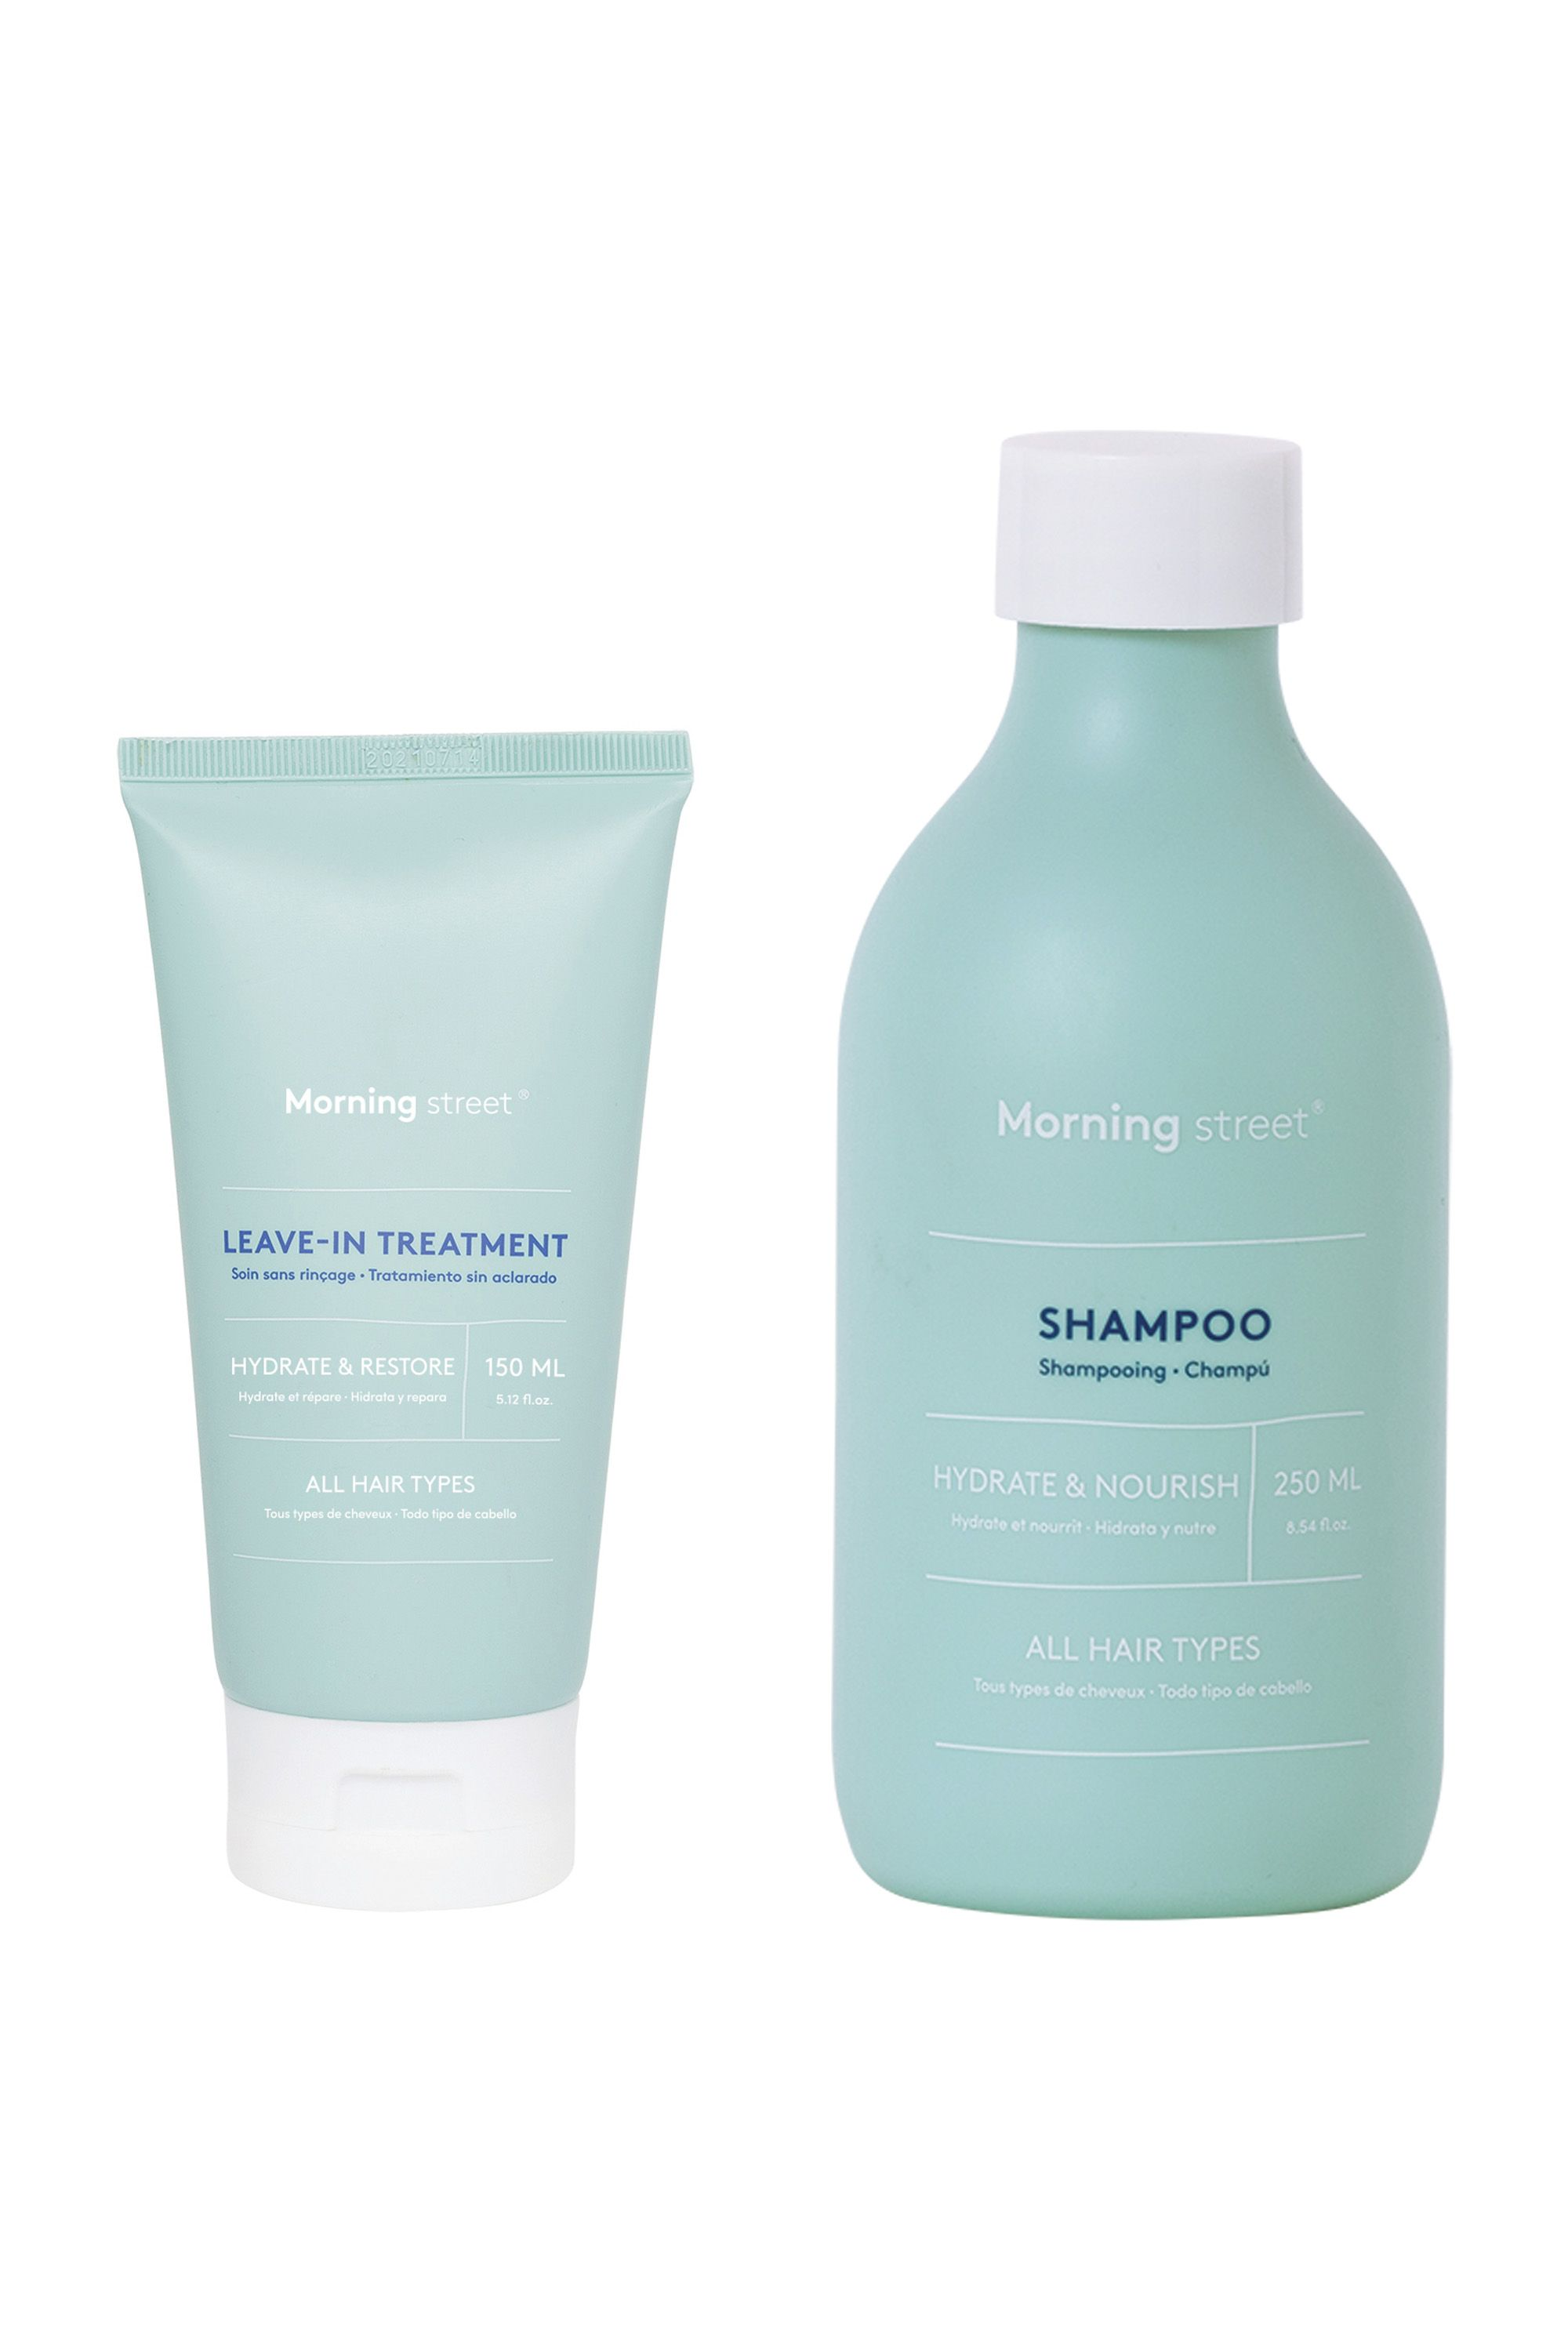 Blissim : Morning Street - Duo shampooing et leave-in treatment - Duo shampooing et leave-in treatment